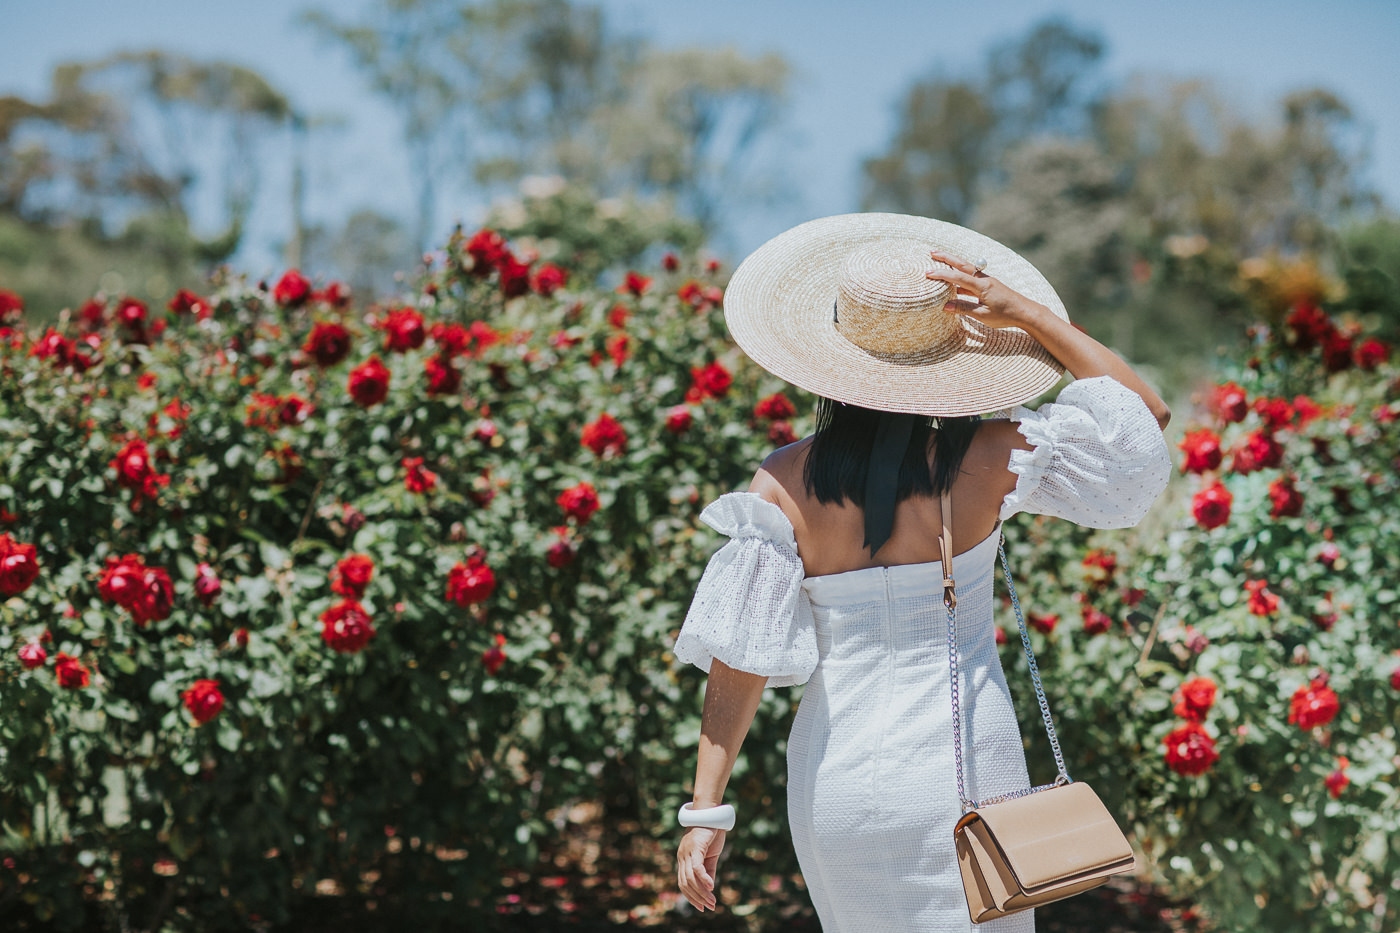 girl from back not showing face with large hat and roses